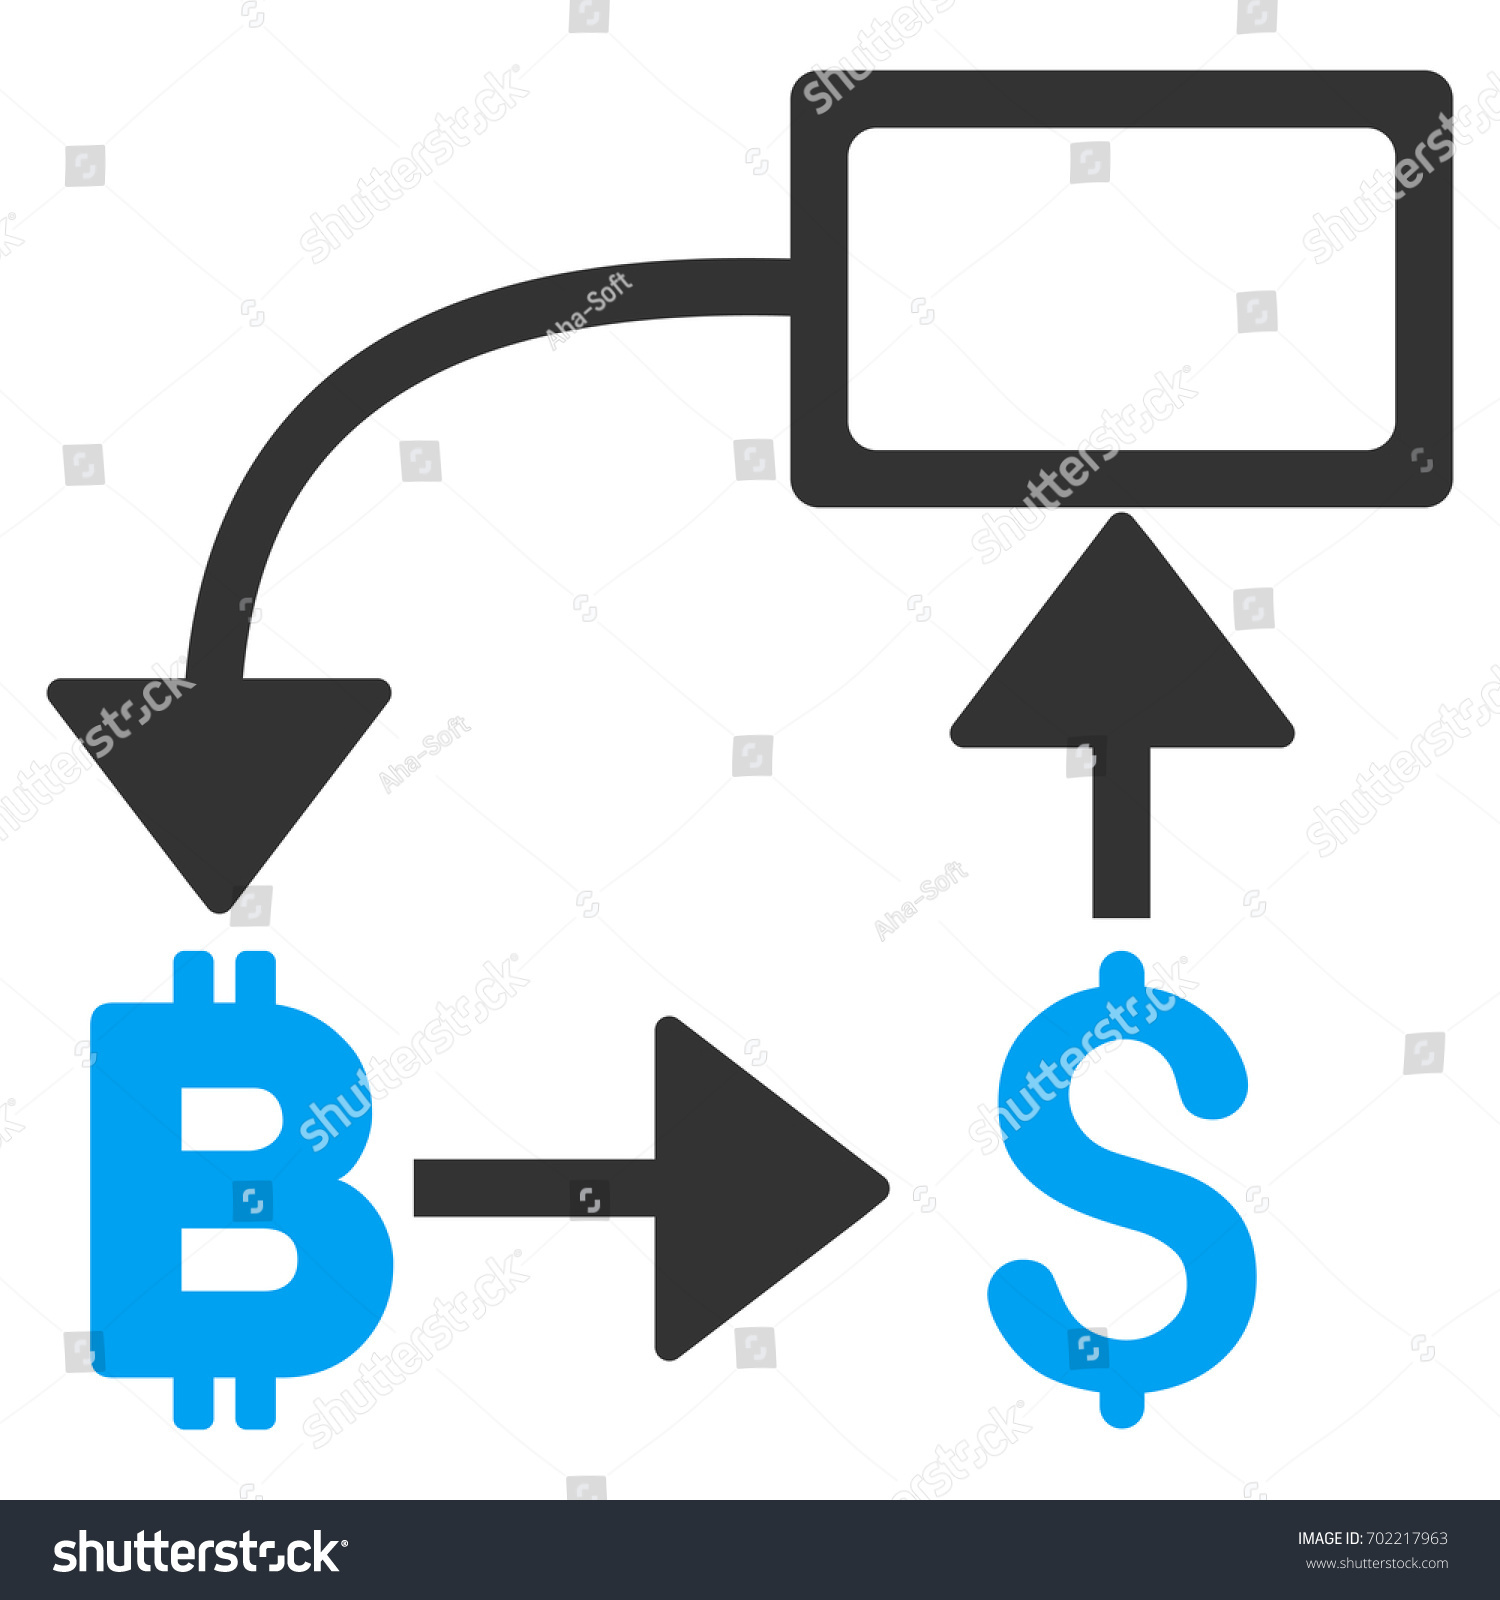 Bitcoin dollar flow chart flat raster stock illustration 702217963 bitcoin dollar flow chart flat raster icon for application and web design geenschuldenfo Image collections